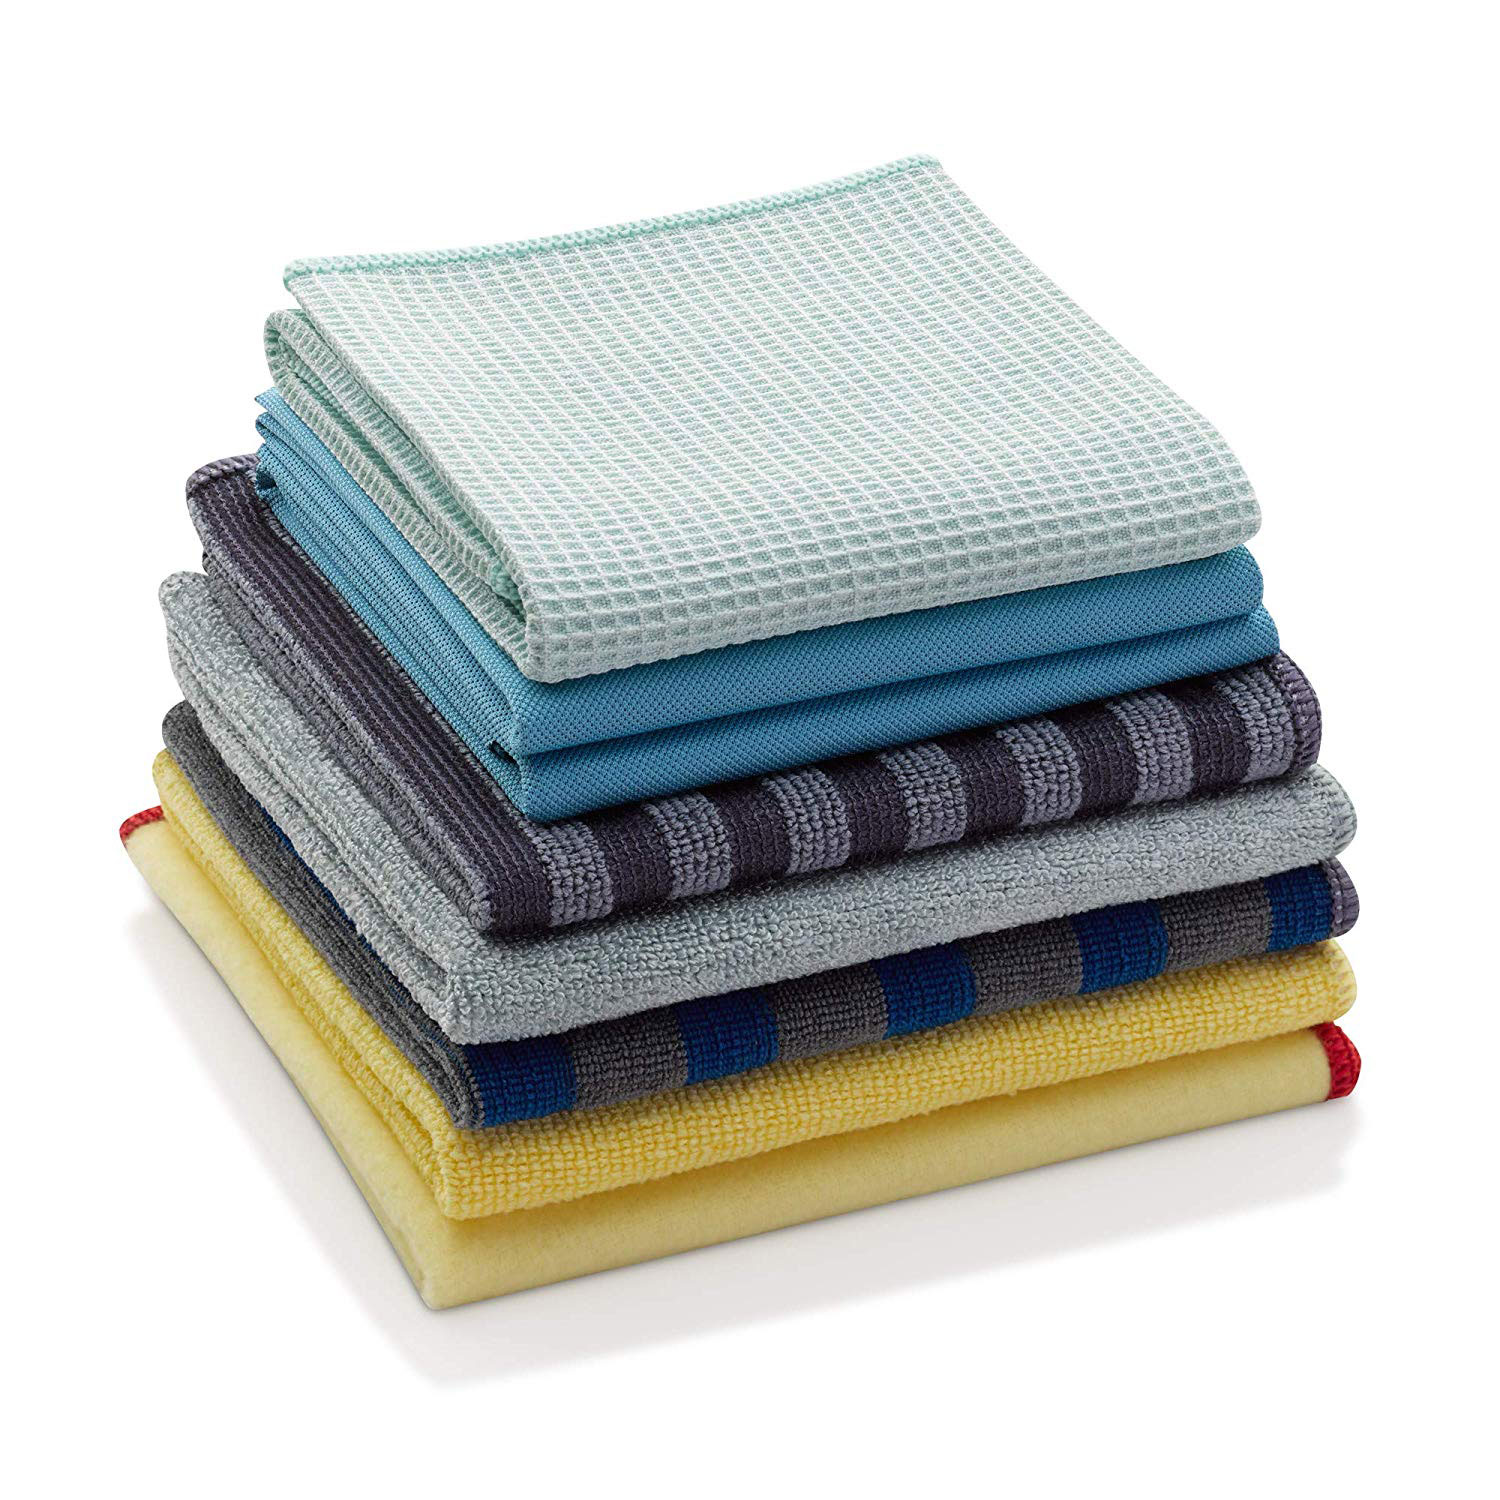 E-Cloth Microfiber Home Cleaning Set for Chemical-Free Cleaning with Just Water